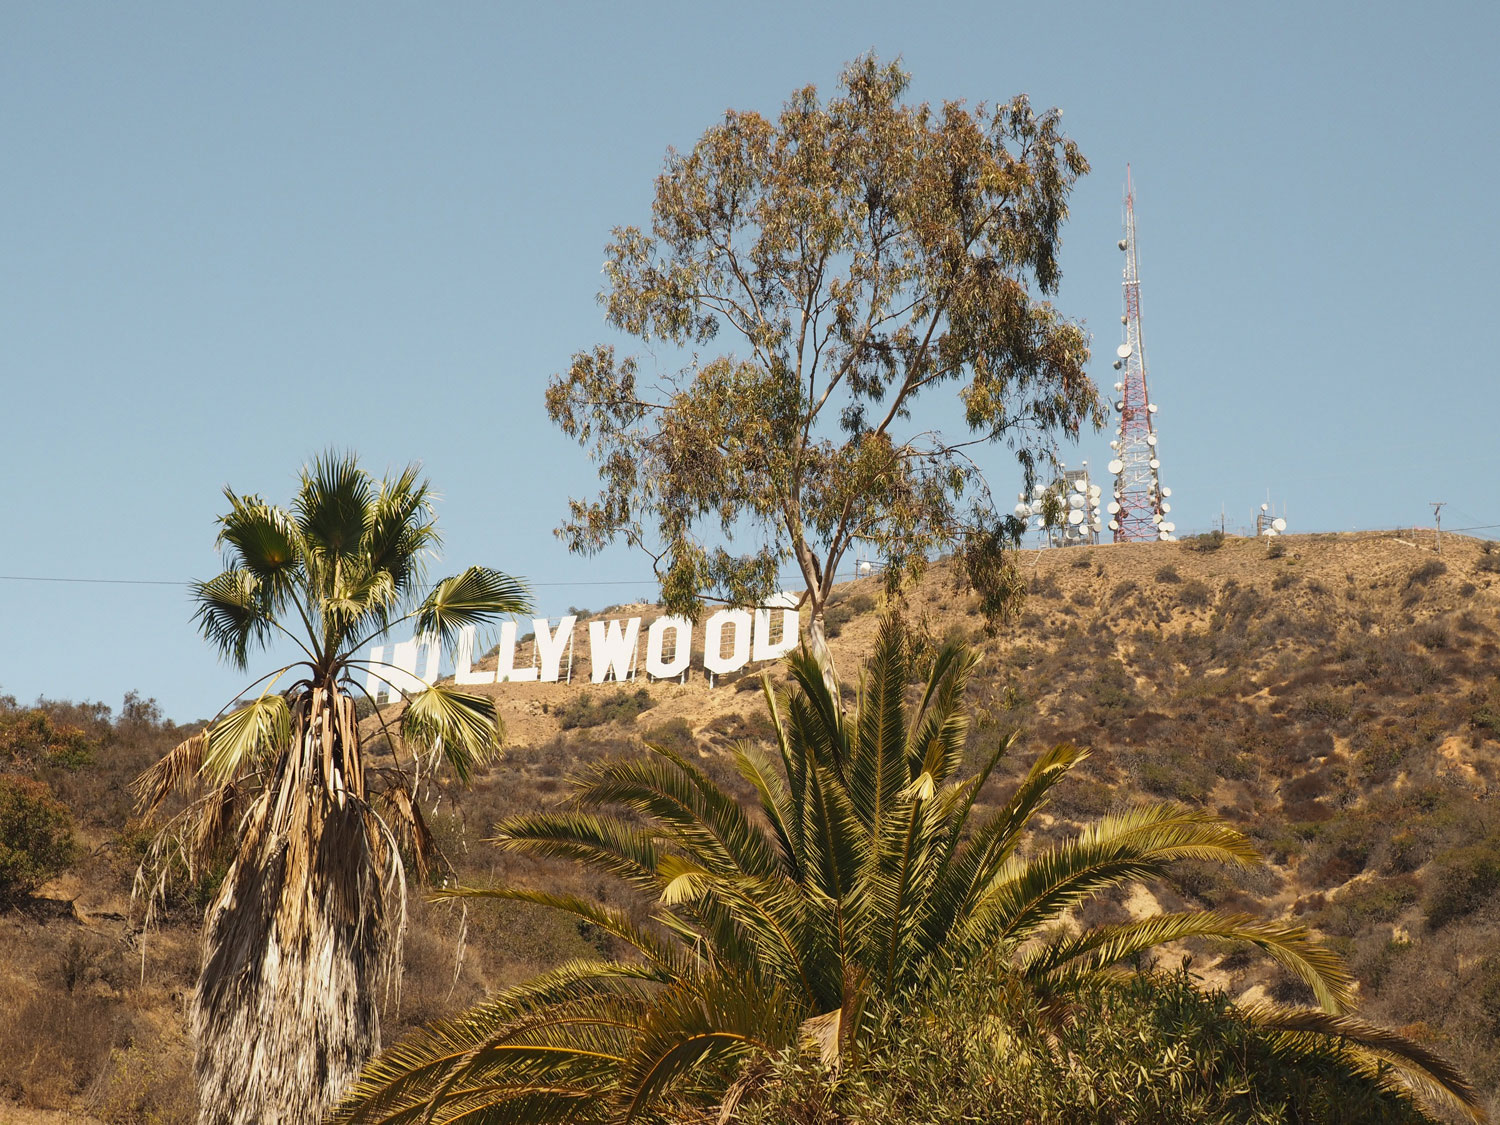 losangeles-hollywoodsign-(1)